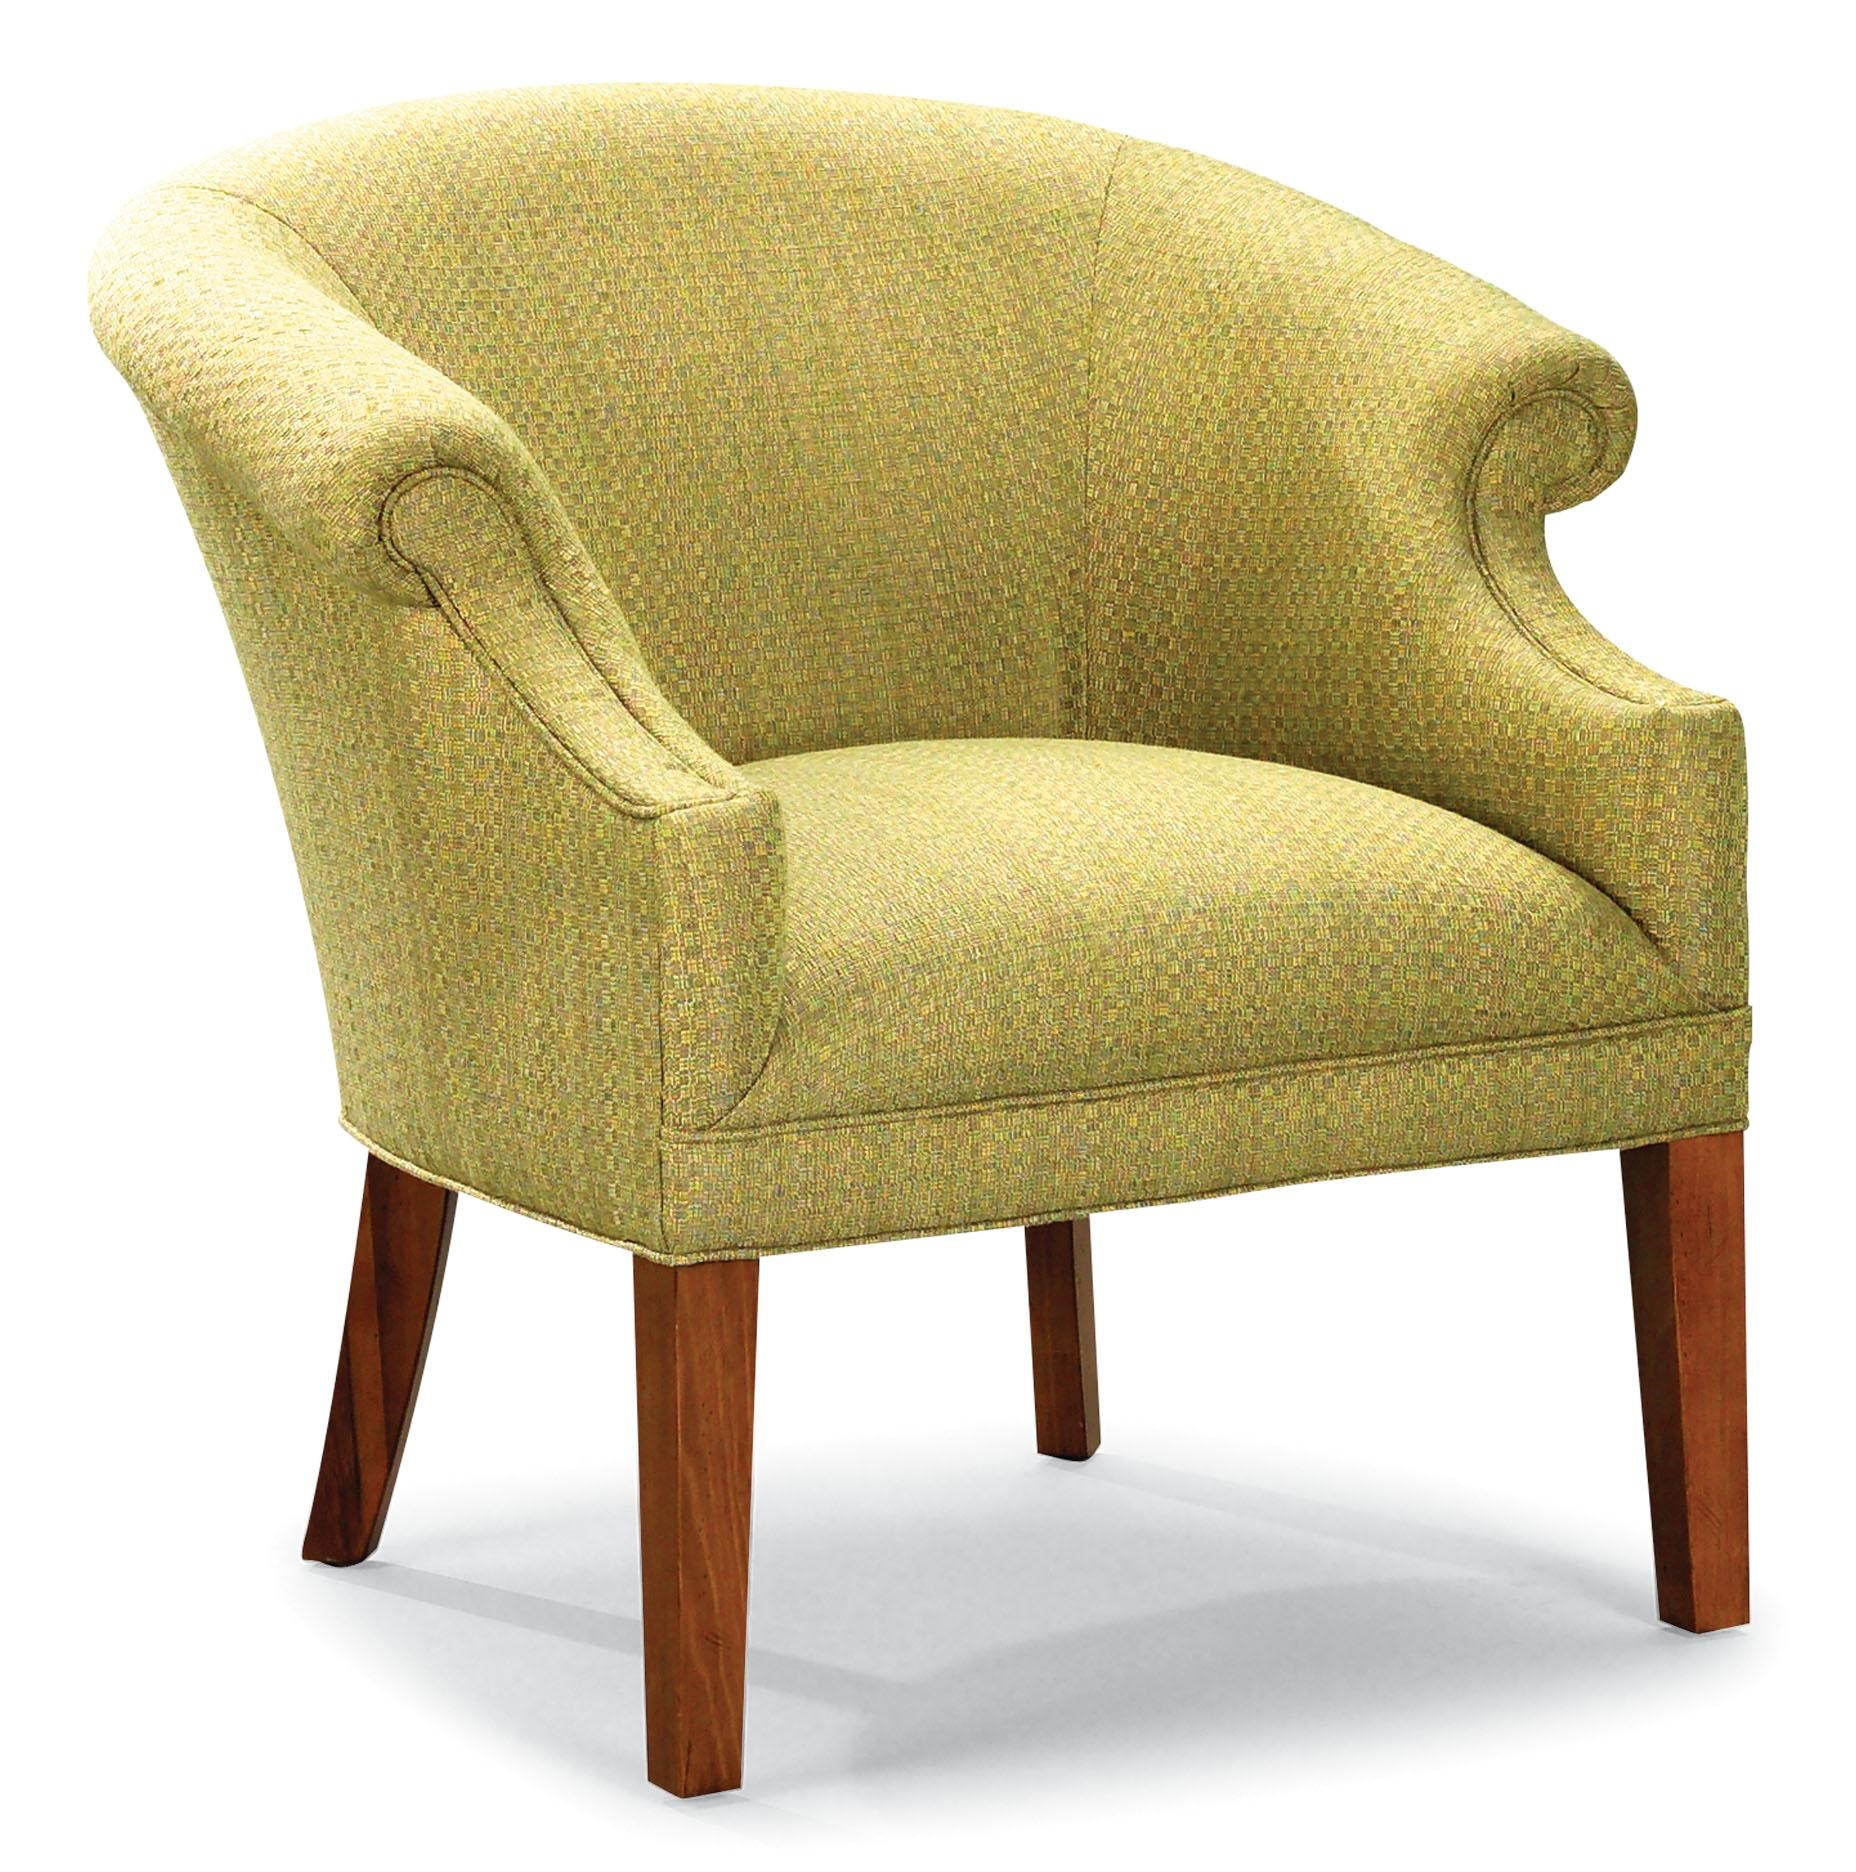 Stationary Chair Chairs Curved Stationary Chair With Tall Wood Legs By Fairfield At Lindy S Furniture Company